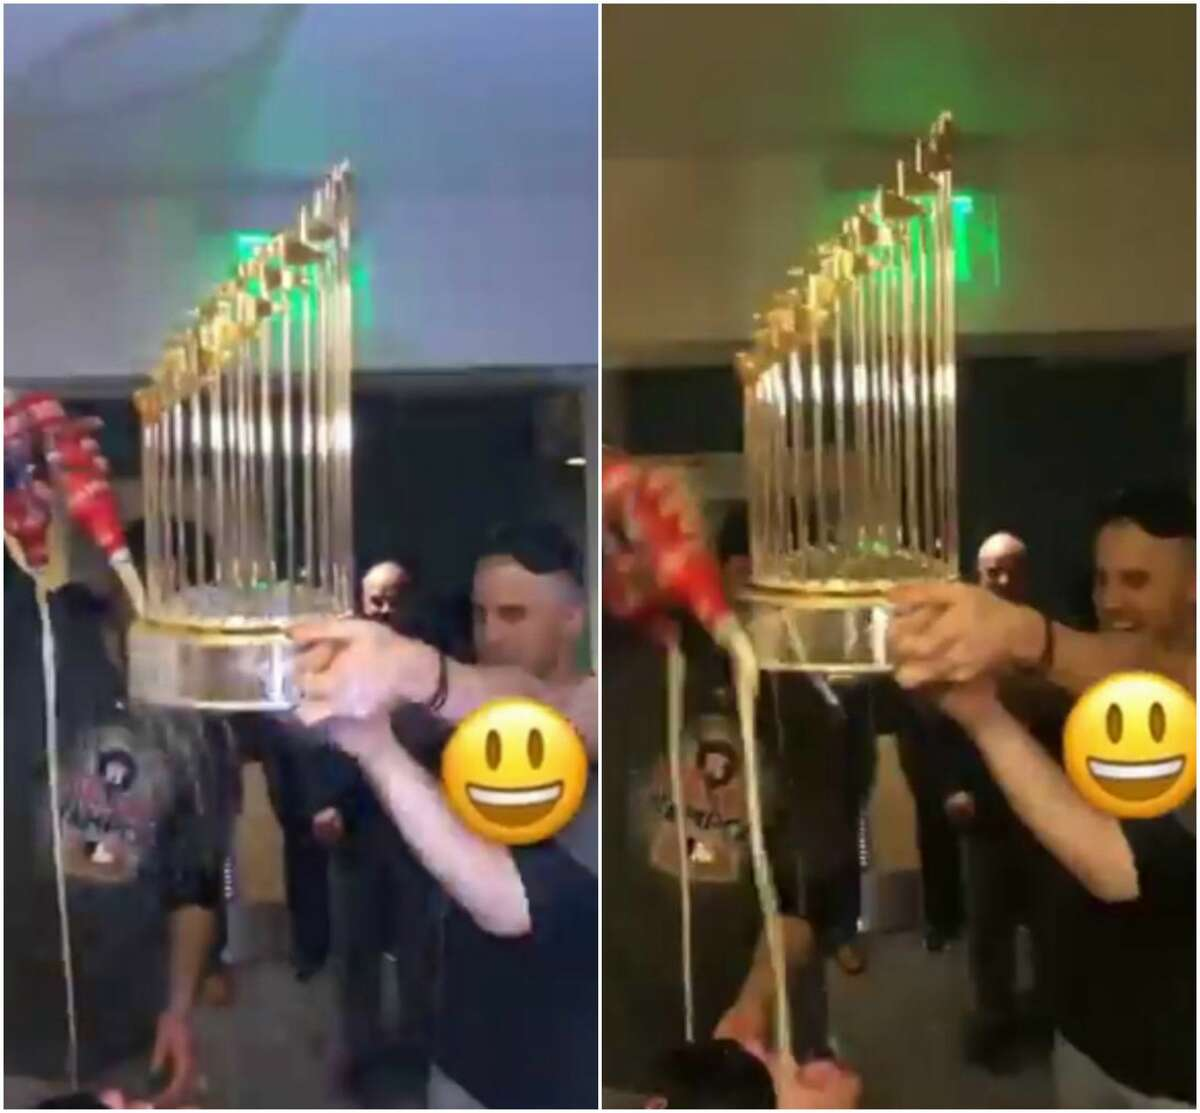 Houston Astrospitcher James Hoyt and catcher Max Stassi had a little fun Wednesday night with theCommissioner's Trophy. Swipe through to see more locker room shenanigans following the team's World Series win.